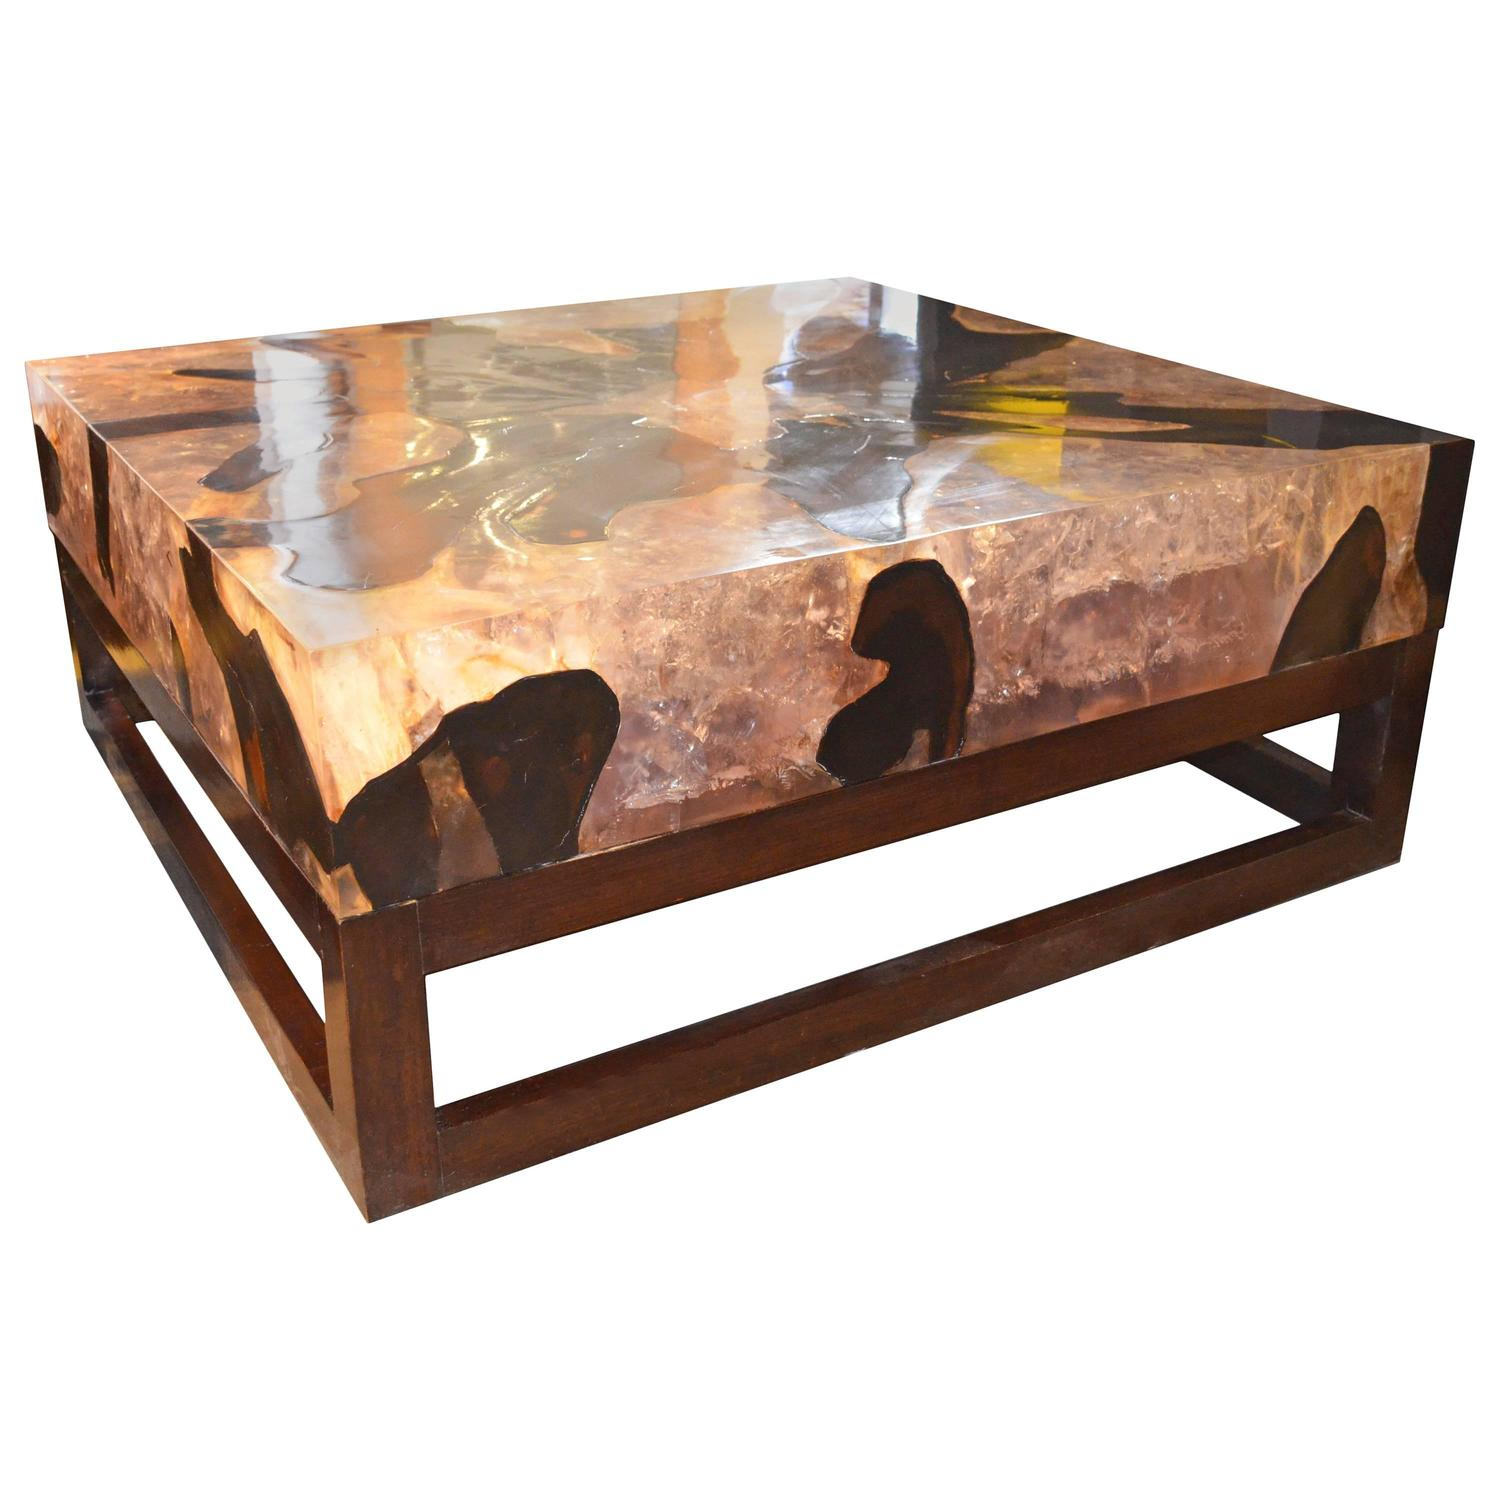 Cracked Resin Coffee Table For Sale At 1stdibs